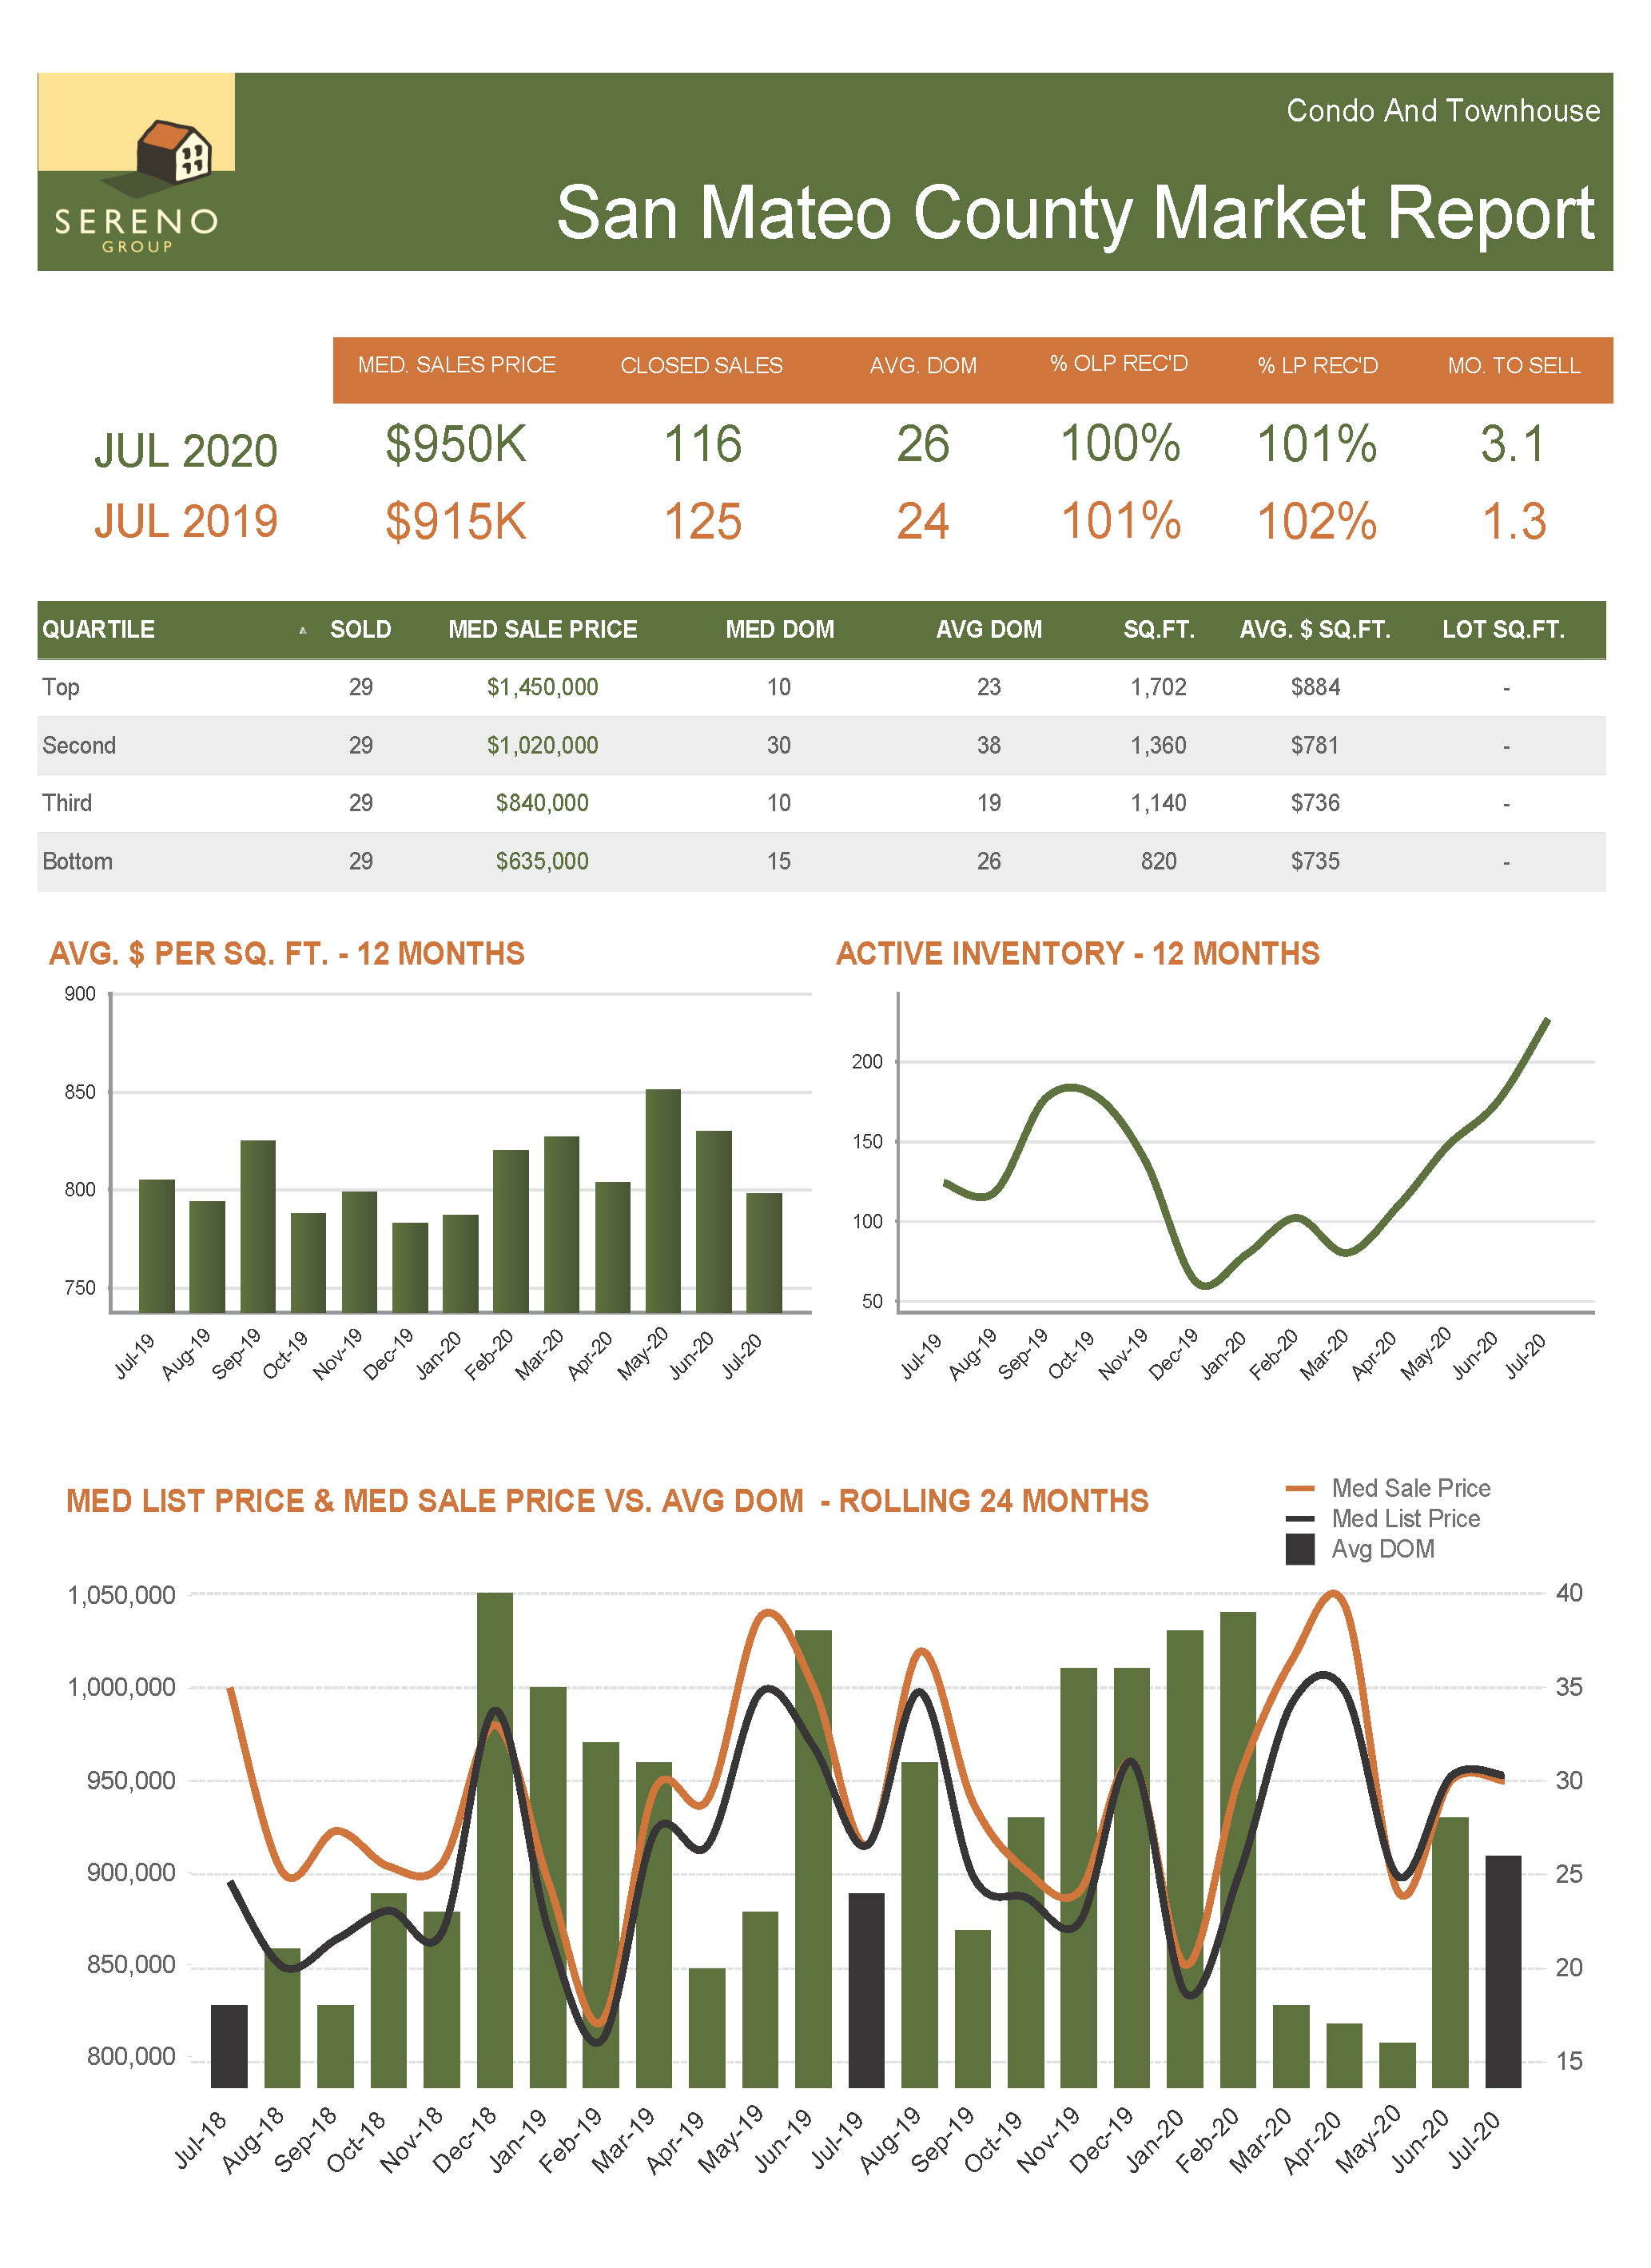 San Mateo County C_TH Market Report - Jul 2020